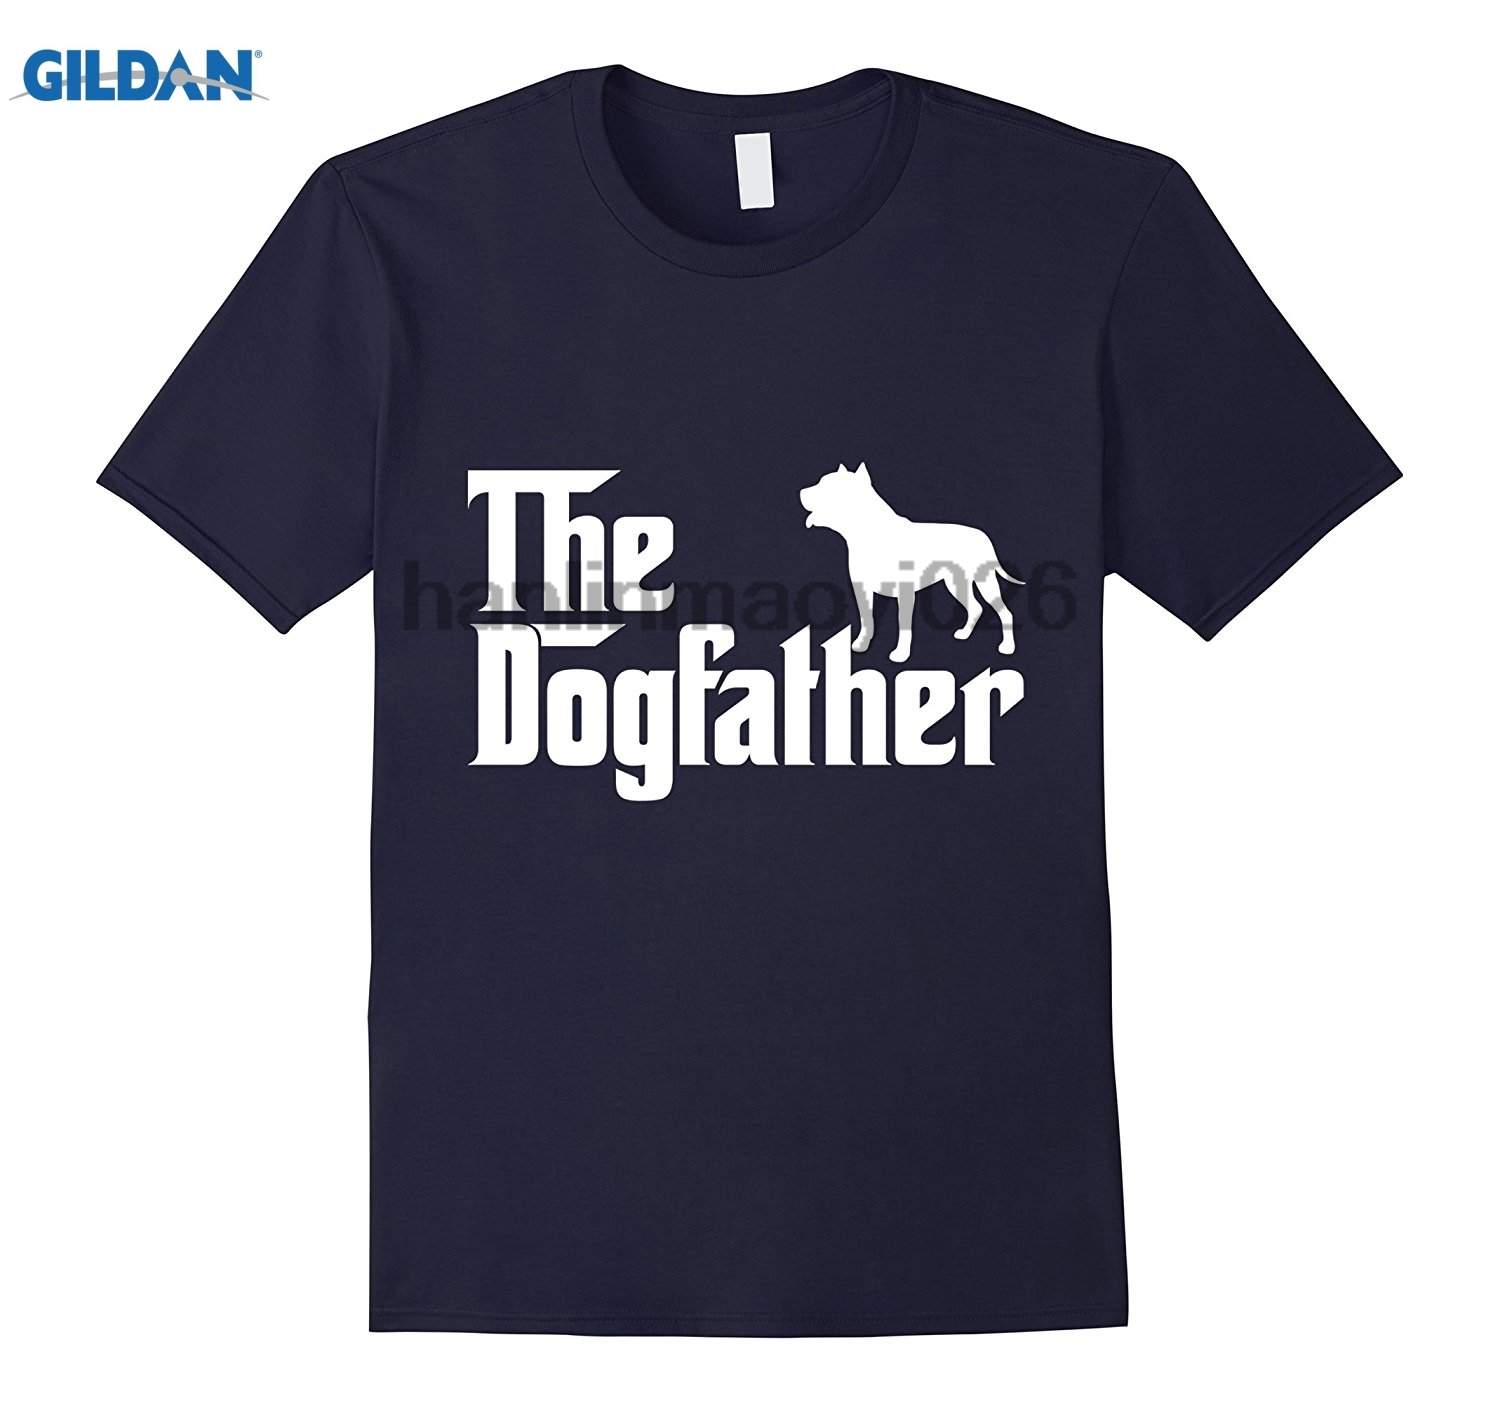 GILDAN The Dogfather Funny T-Shirt For Dogs Lover Dad Fathers Day